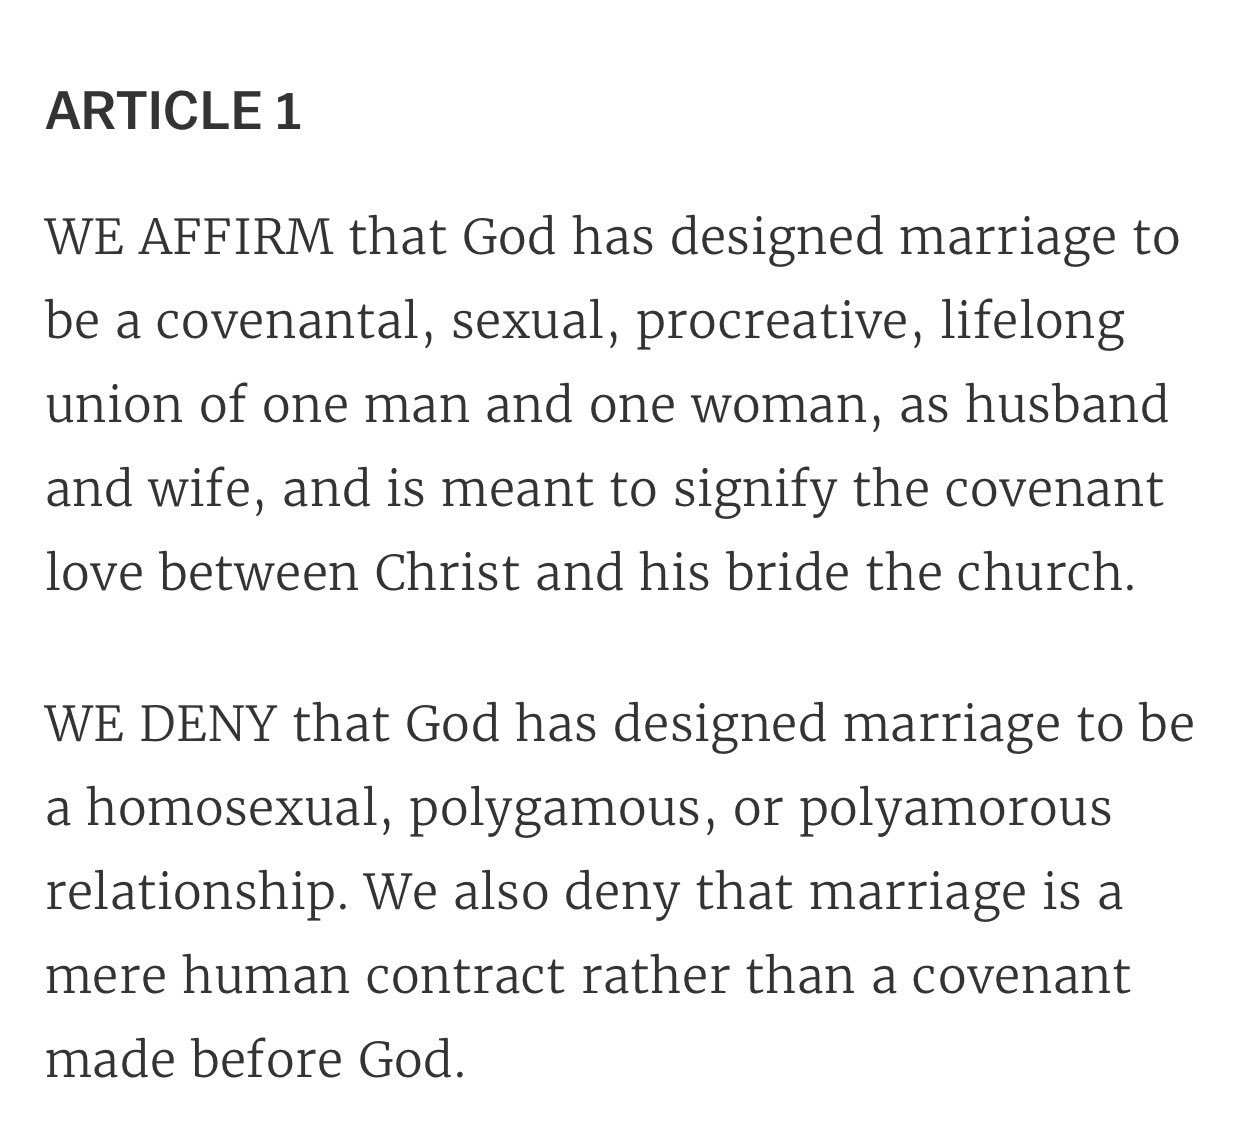 The same people who drafted the #NashvilleStatement voted for Donald Trump. Jesus has been hijacked. https://t.co/2rpmGogwnd